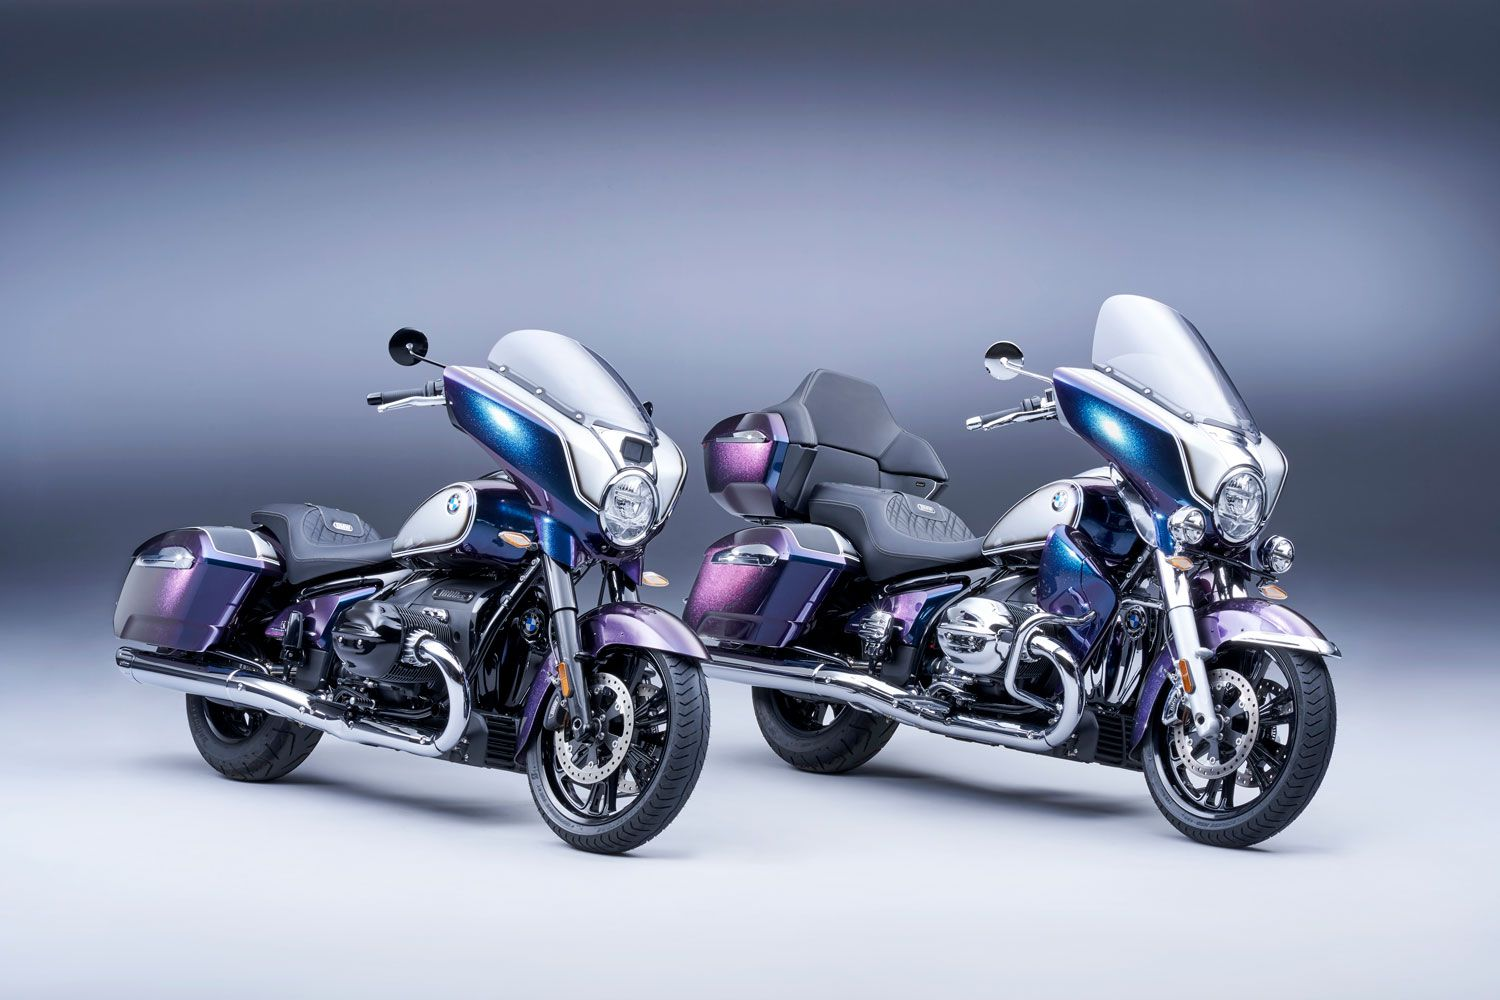 The 2022 BMW R 18 B and R 18 Transcontinental dressed in Option 719 Galaxy Dust metallic paint.